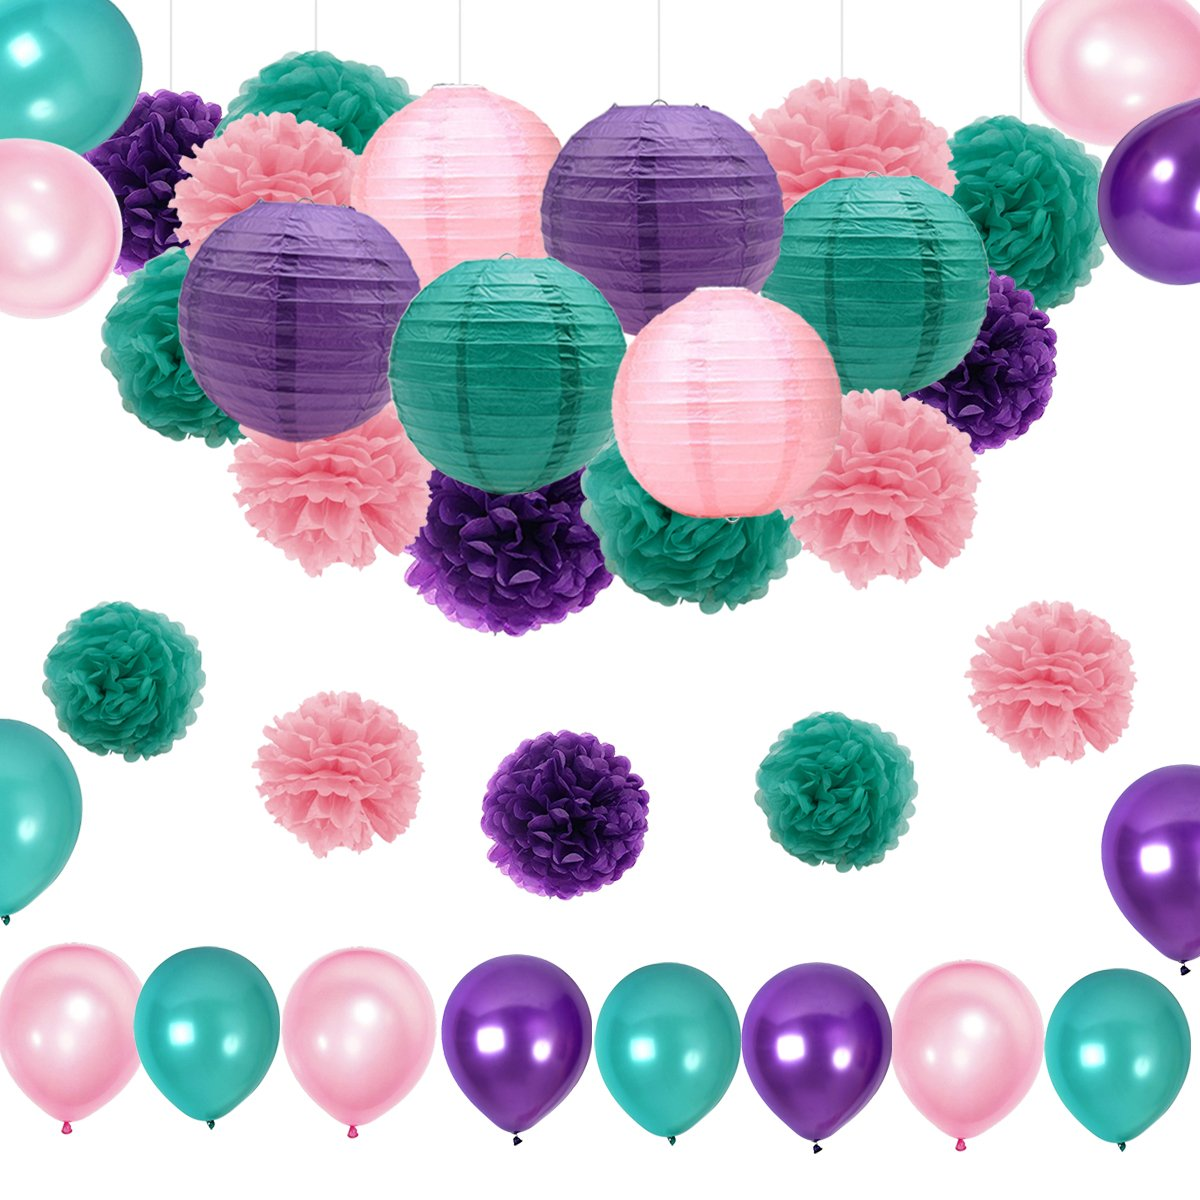 CutePet Mermaid Birthday Party Supplies/Under the Sea Party 36pcs Teal Pink Purple Paper Pom Pom Paper Lanterns Balloons for Birthday Decor Baby Shower Decorations Frozen Birthday Day Party Supplies